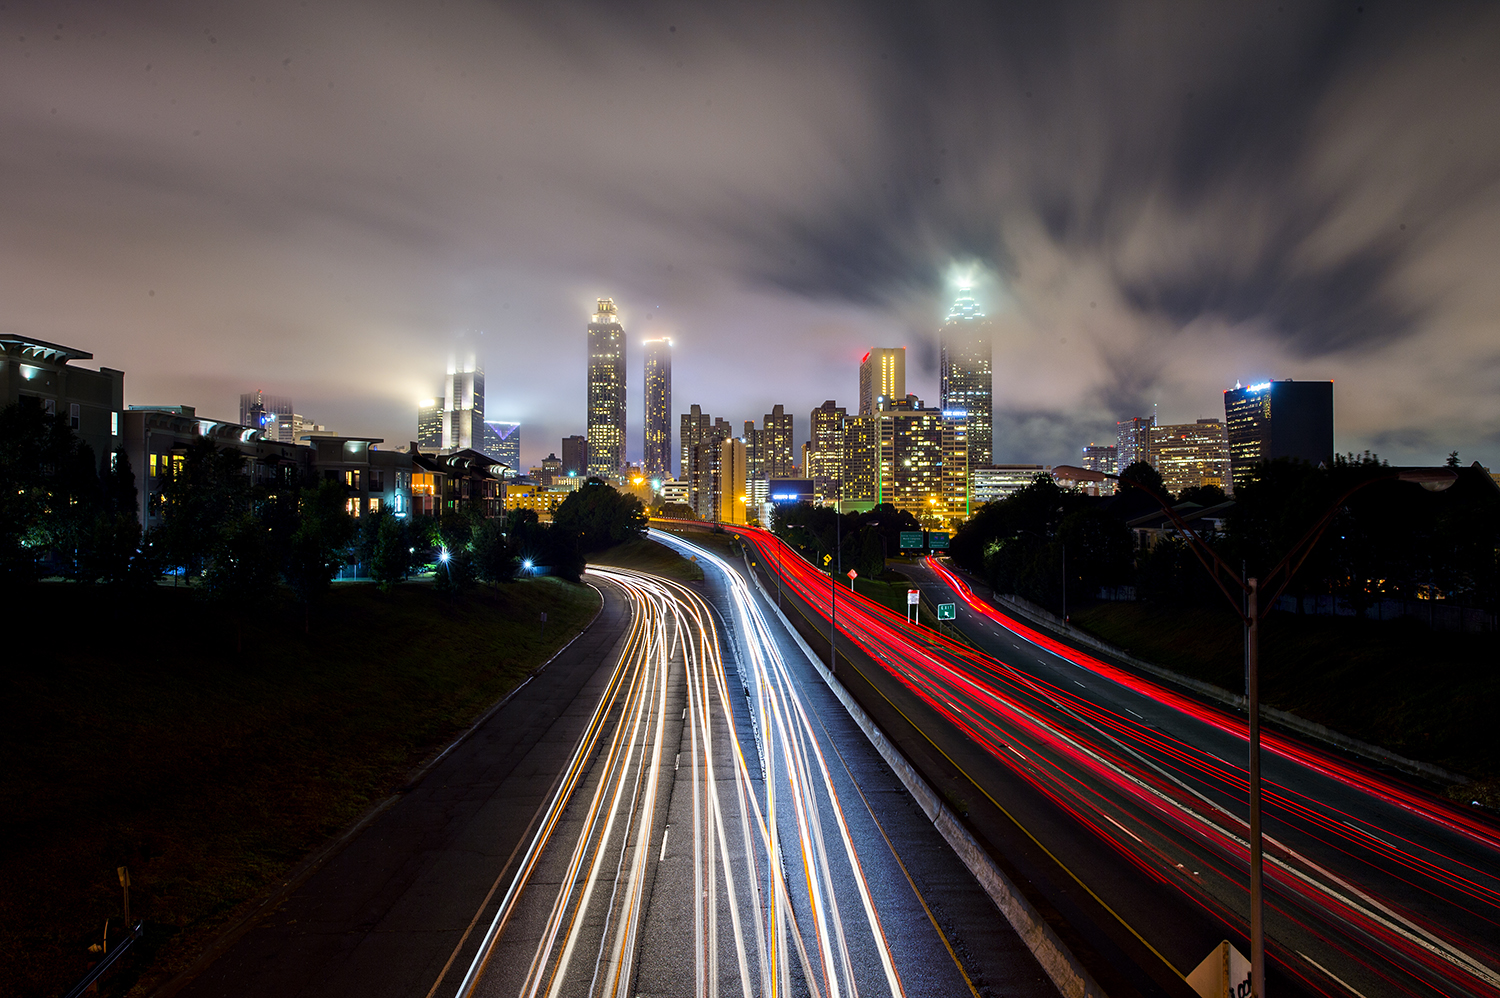 Traffic streams in and out of downtown Atlanta on a recent, cloudy night.